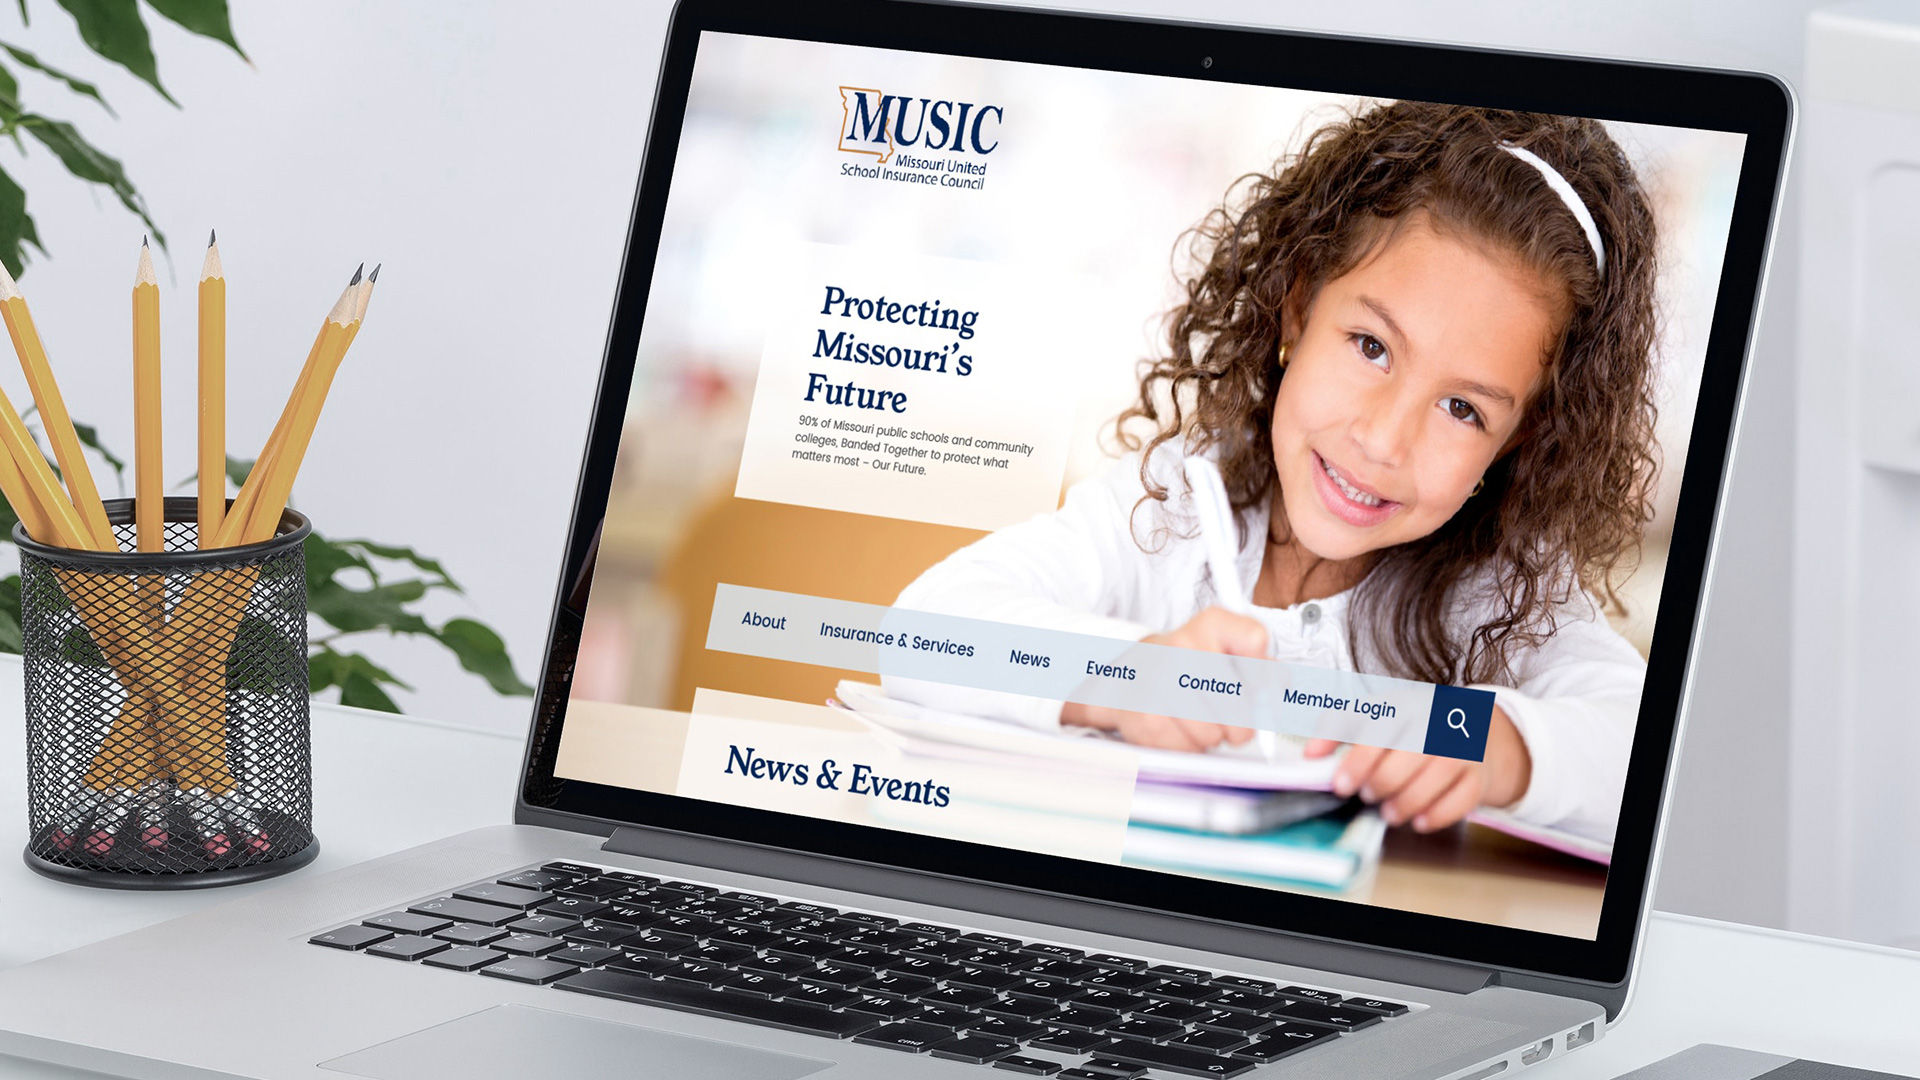 The homepage of the new MUSIC site is visible to the public. With Single Sign-On (SSO) integration, members can log in to view private pages on the site or access their administrative portal, based on their unique access level.